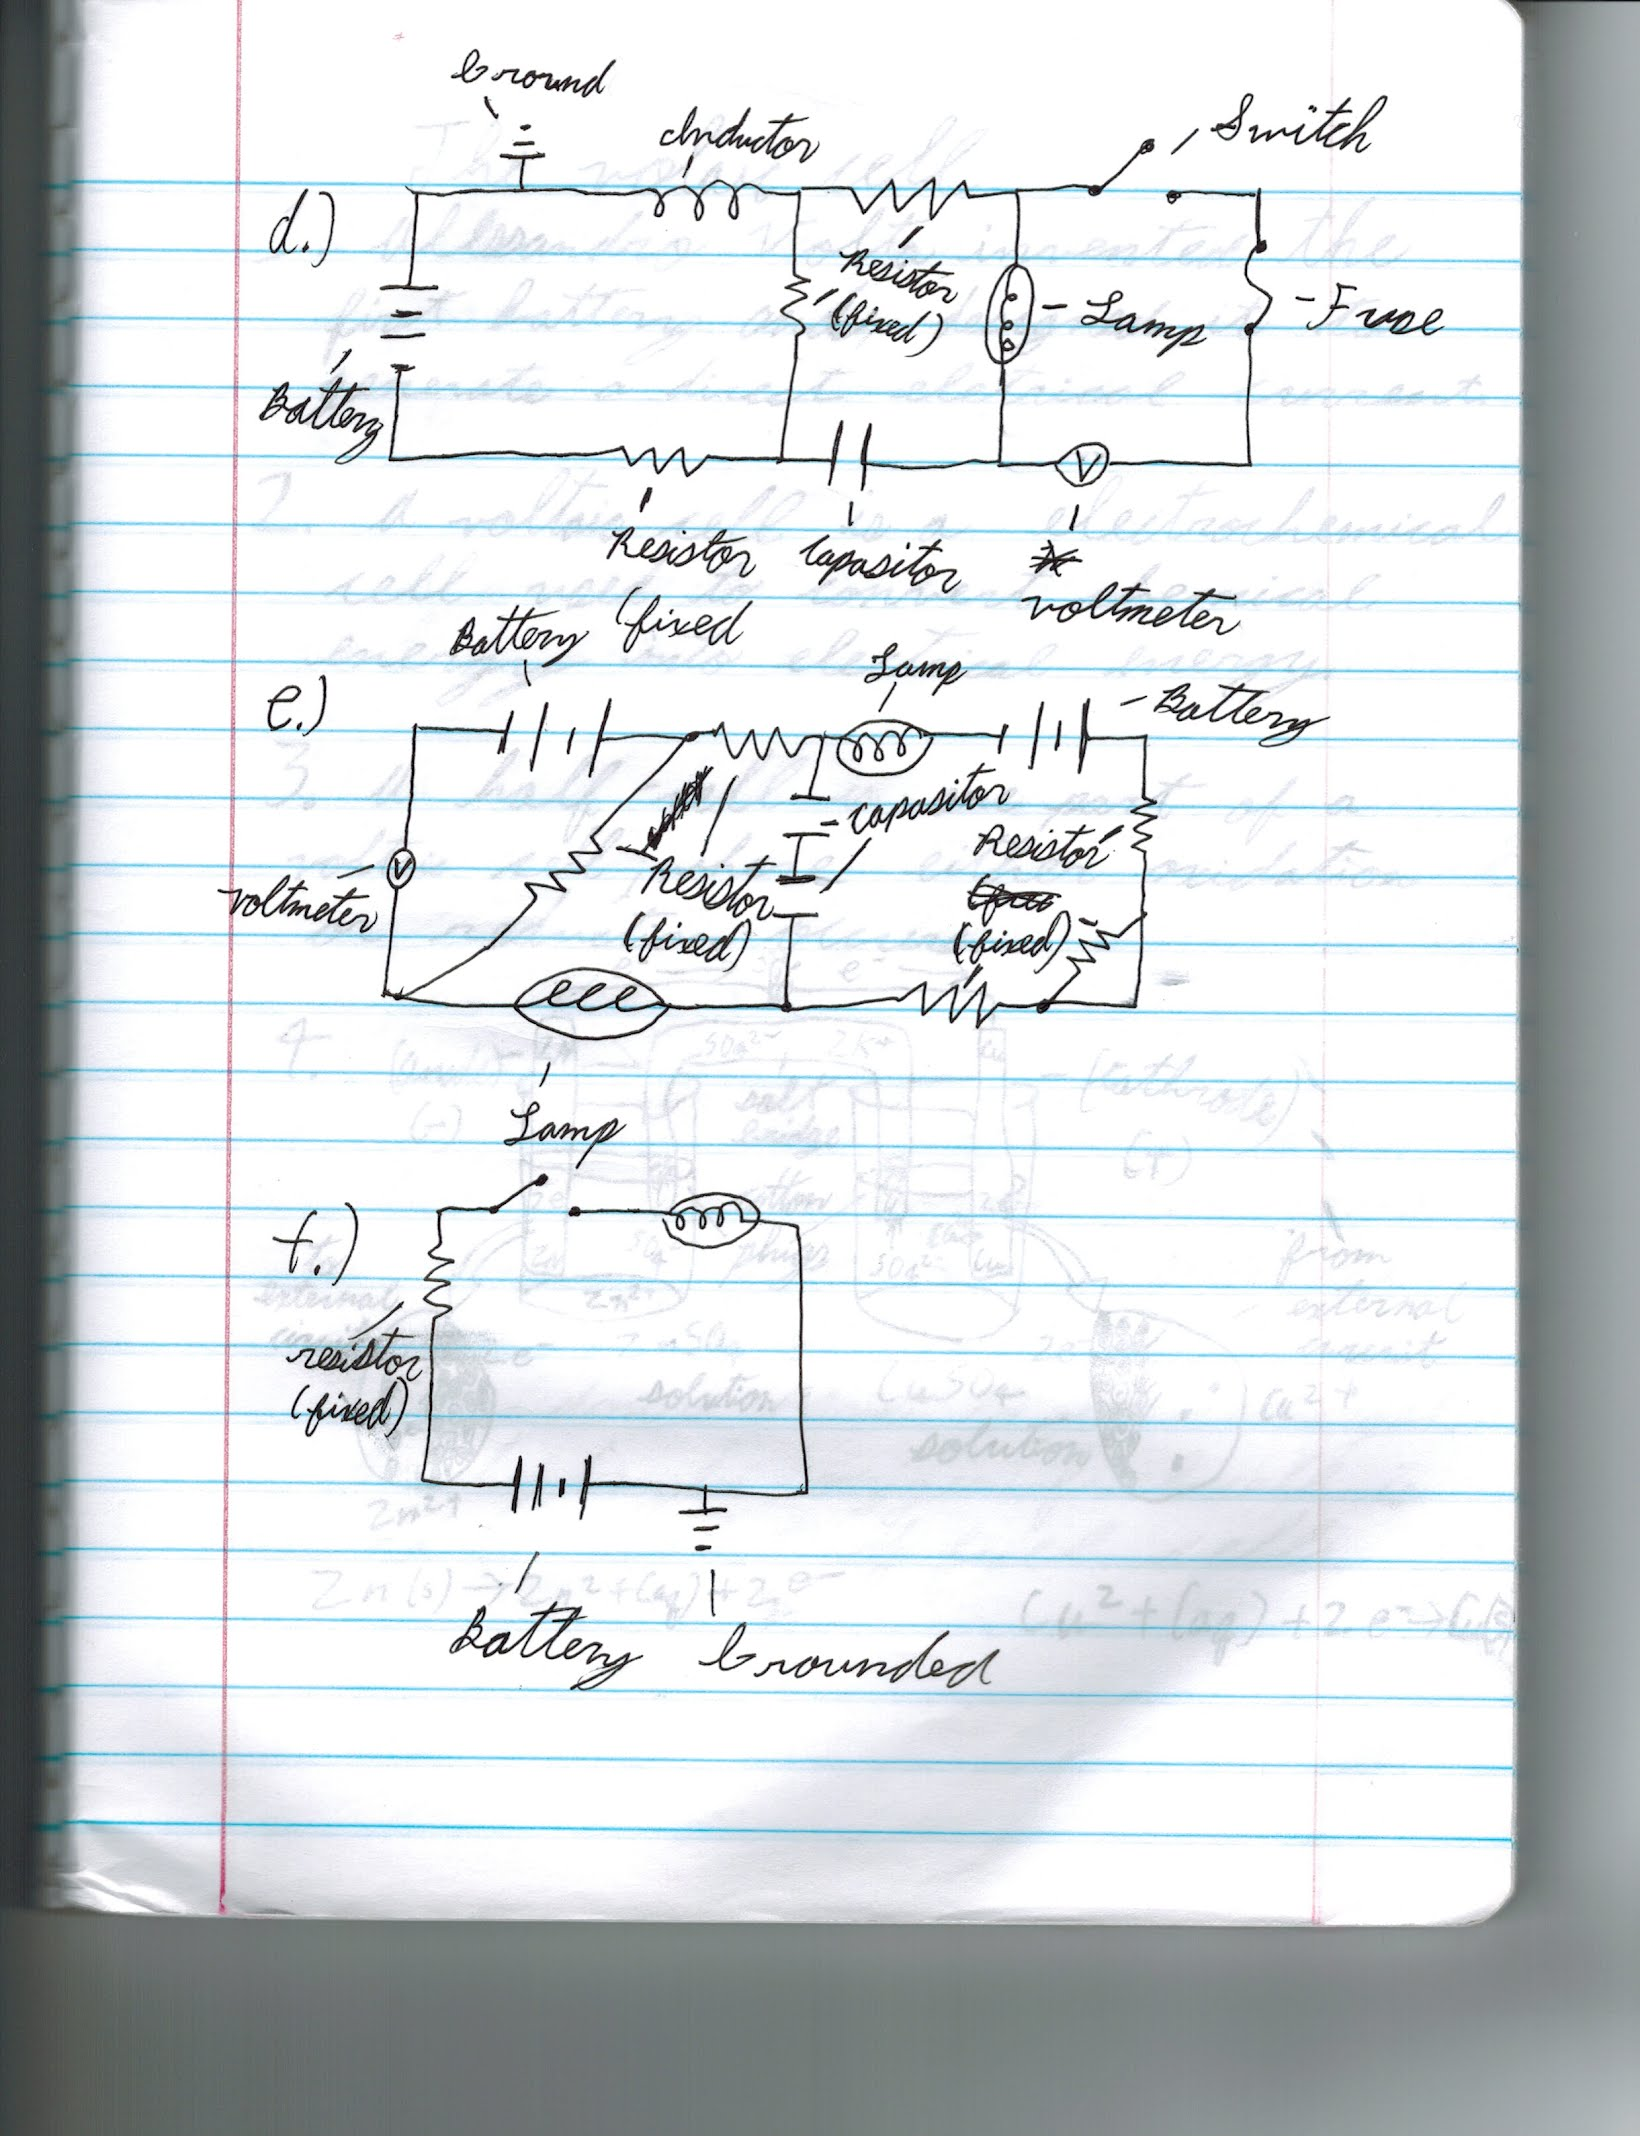 Resistors In A Series Circuit Alexander Peters Digital Portfolio This Diagram I Draw And Label All The Different Parts To It Below Is Key Symbols Used On My Resemble